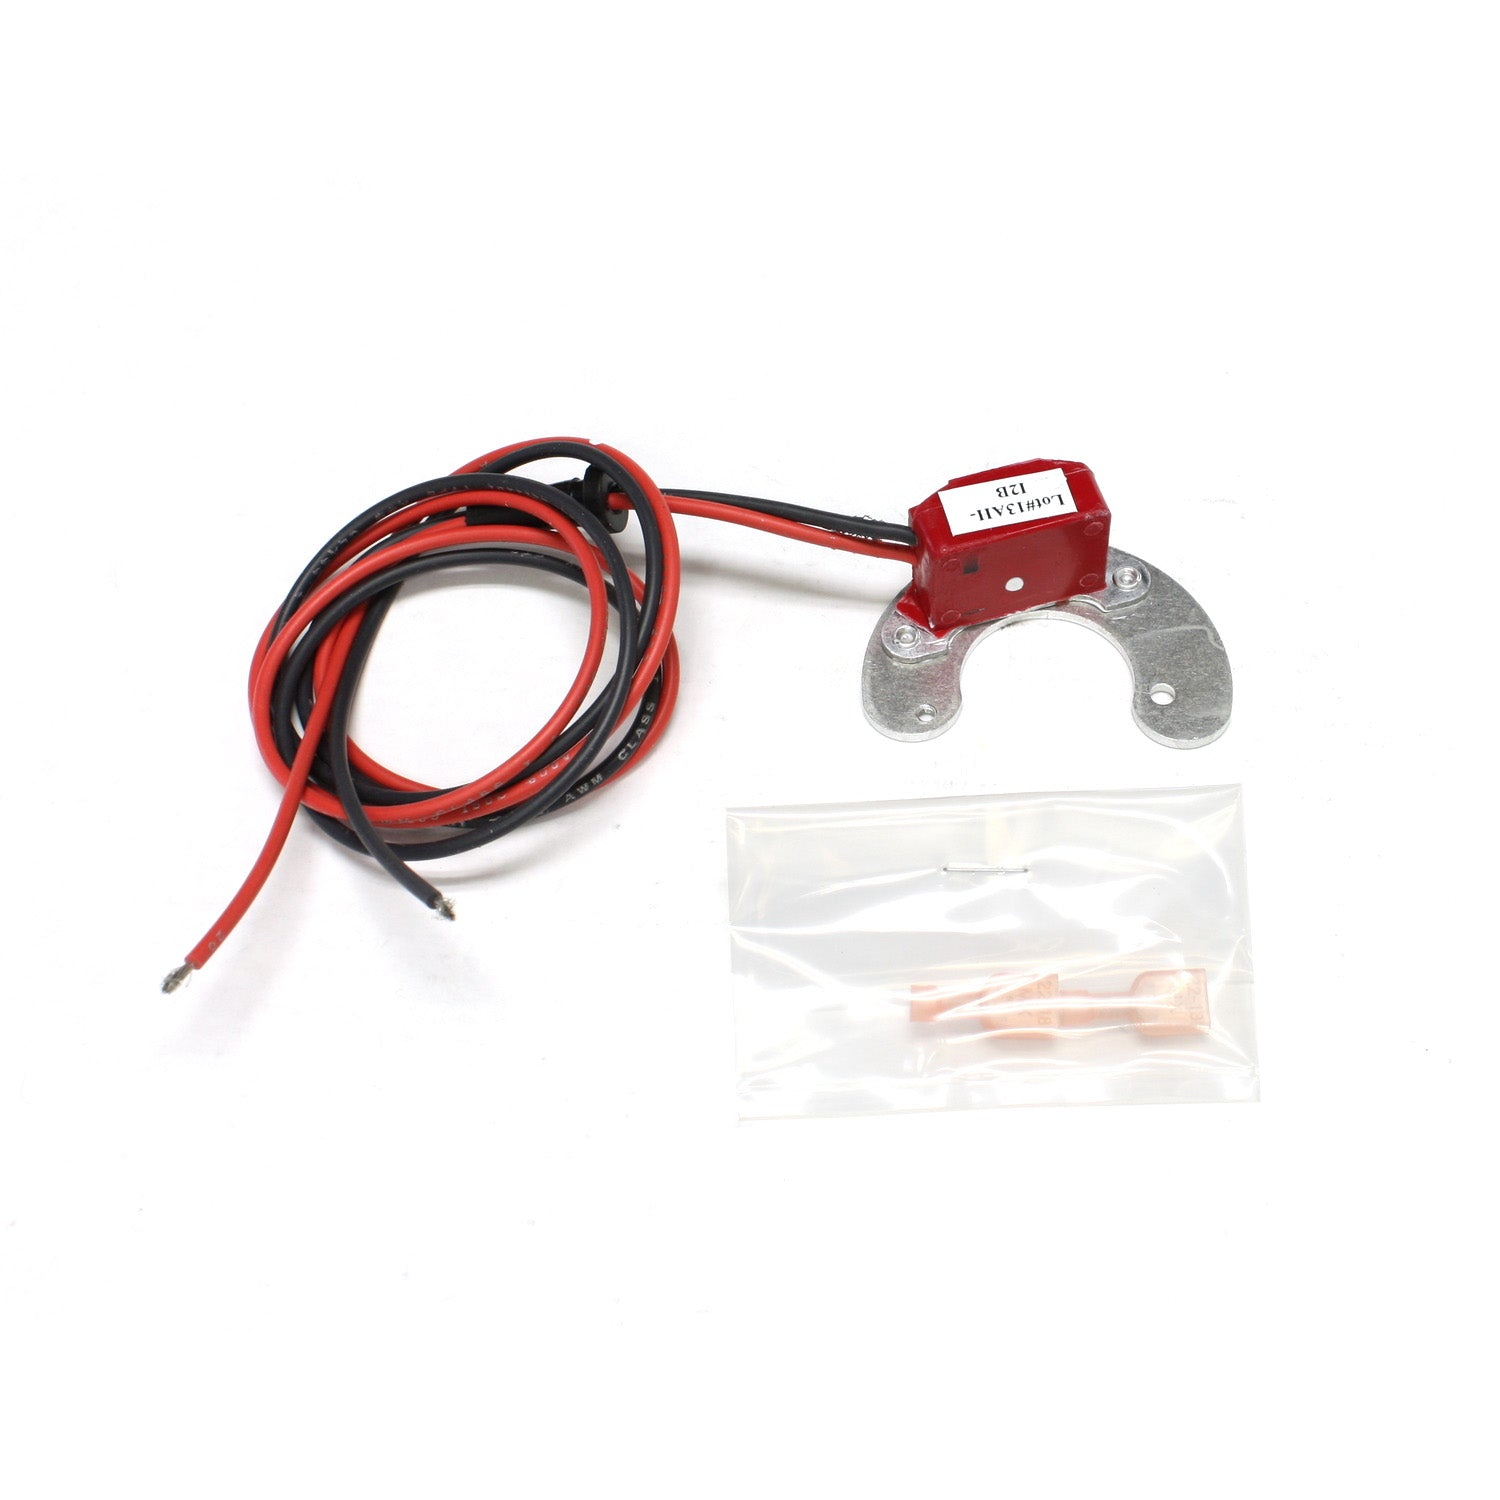 PerTronix D500701 Module (replacement) Ignitor II for PerTronix Flame-Thrower British Cast Distributor